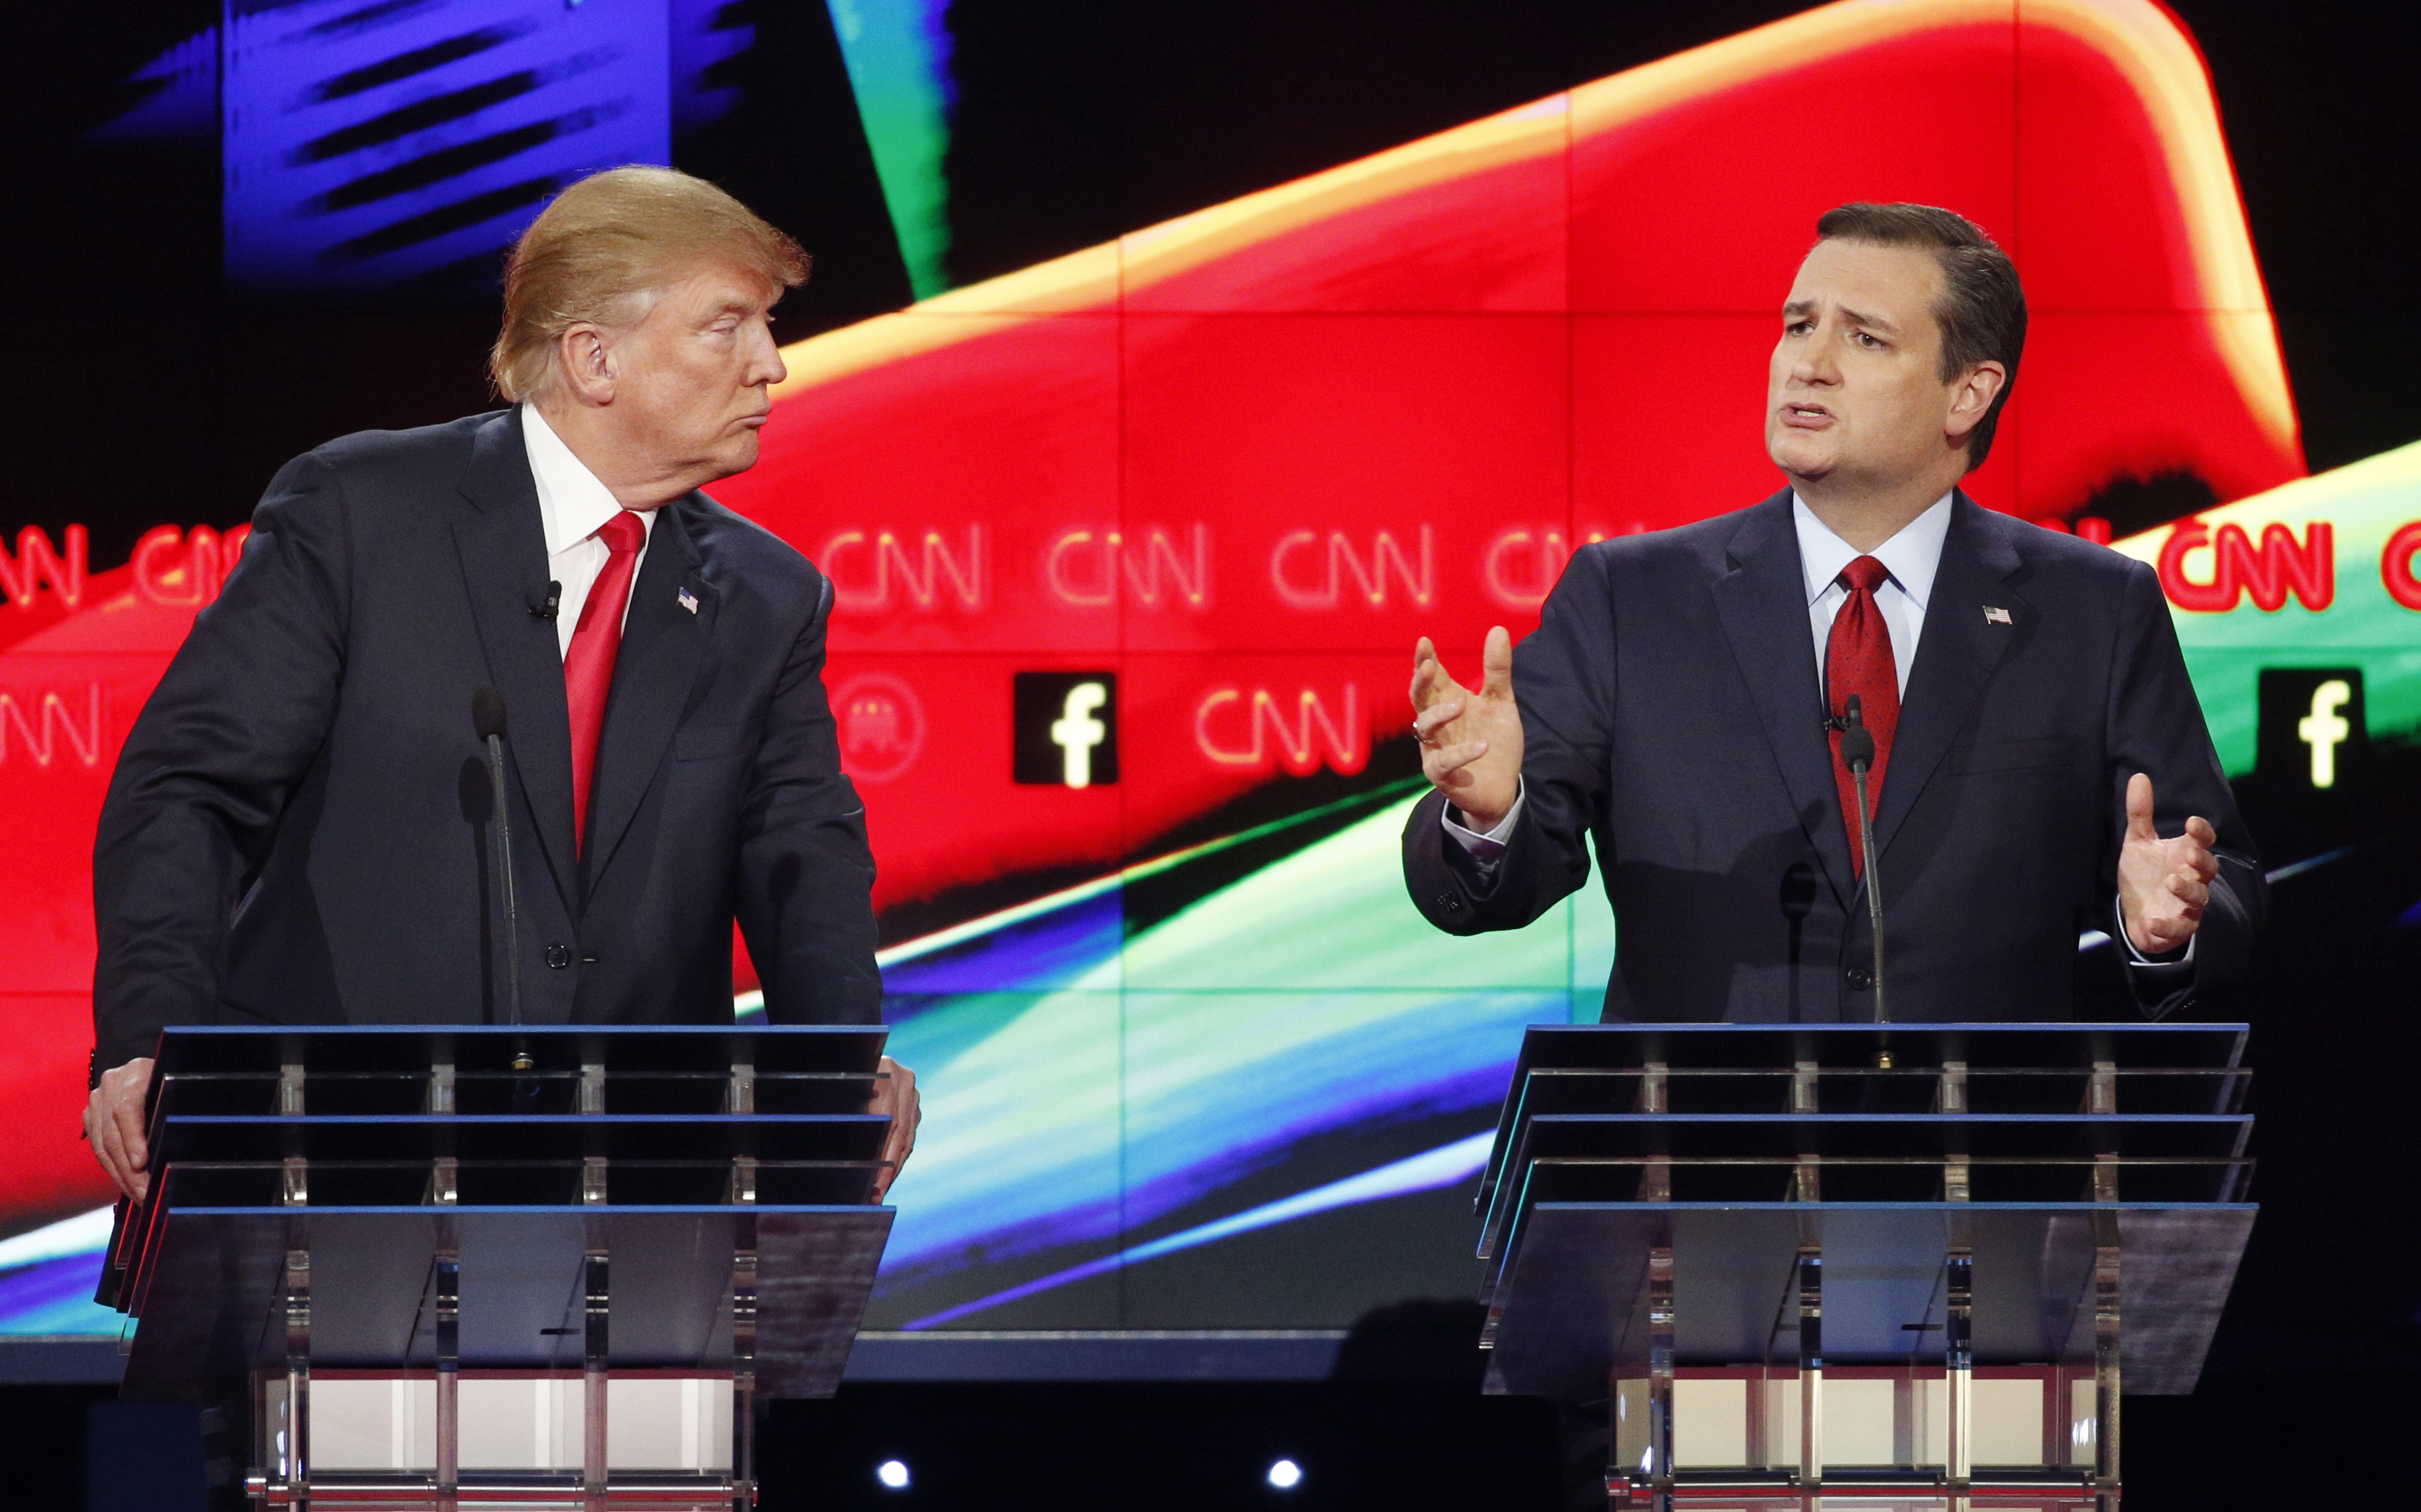 In this Dec. 15, 2015 photo, Donald Trump, left, watches as Ted Cruz speaks during the CNN Republican presidential debate at the Venetian Hotel & Casino in Las Vegas. A growing debate over AmericaÂ?s role in promoting regime change in the Middle East is creating unusual alliances among 2016 presidential candidates that cross party lines.  (AP Photo/John Locher)